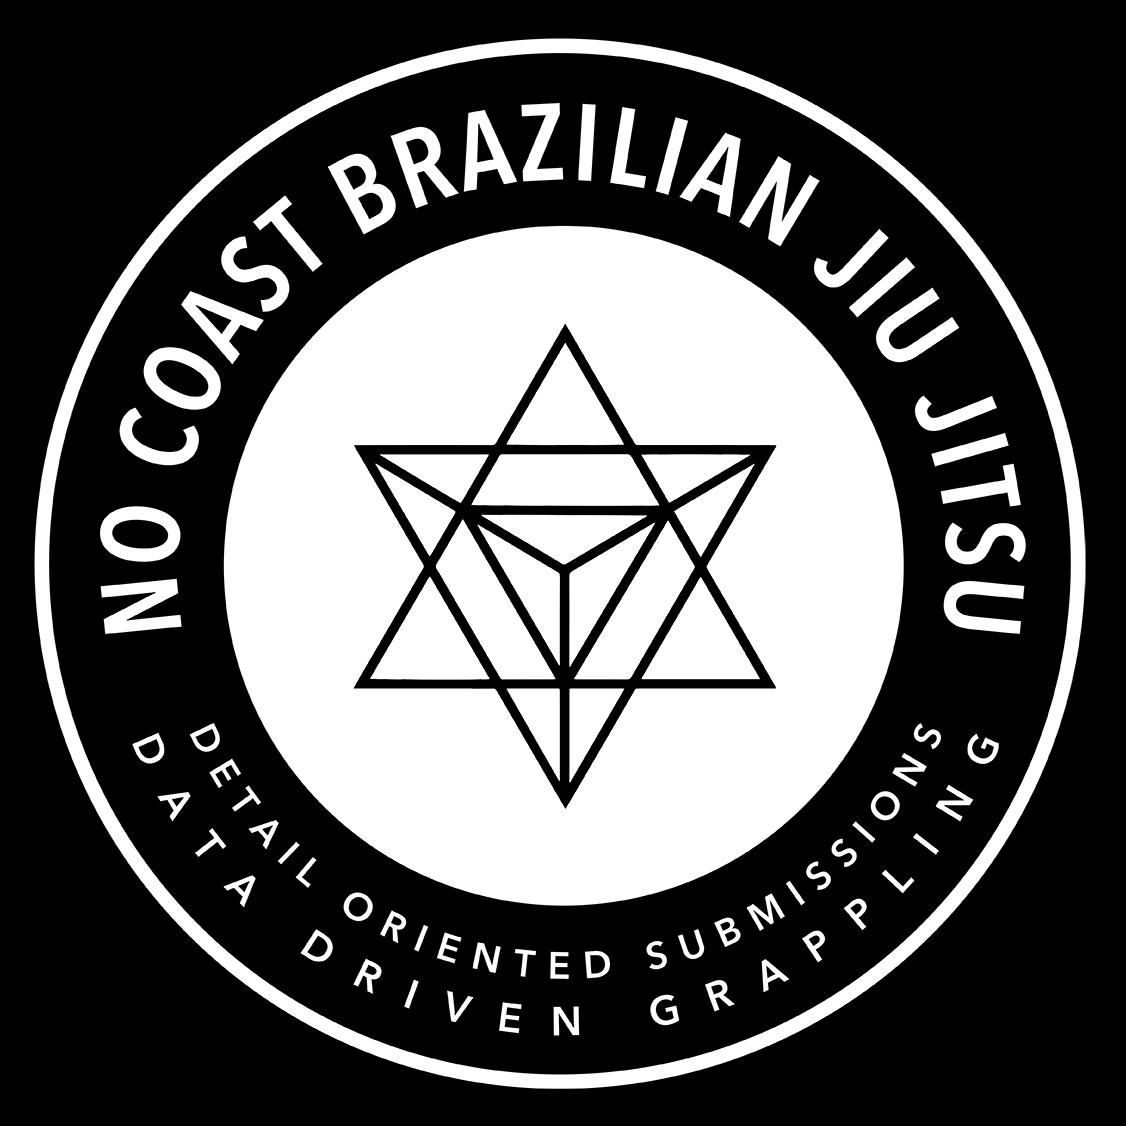 in Waukee - No Coast Brazilian Jiu Jitsu